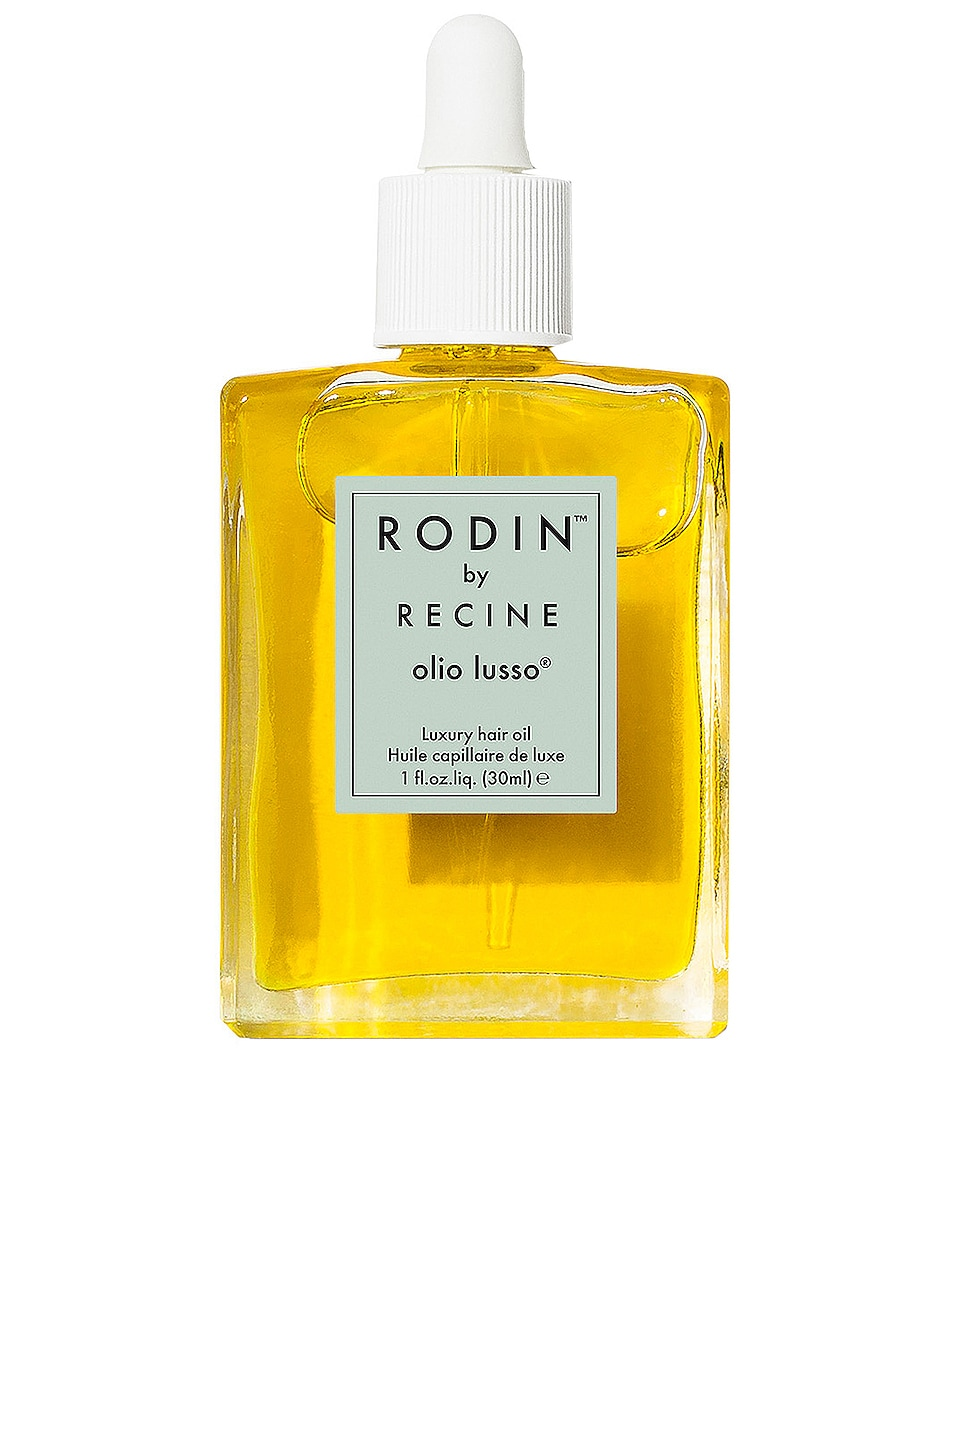 Rodin Luxury Hair Oil in Neutral